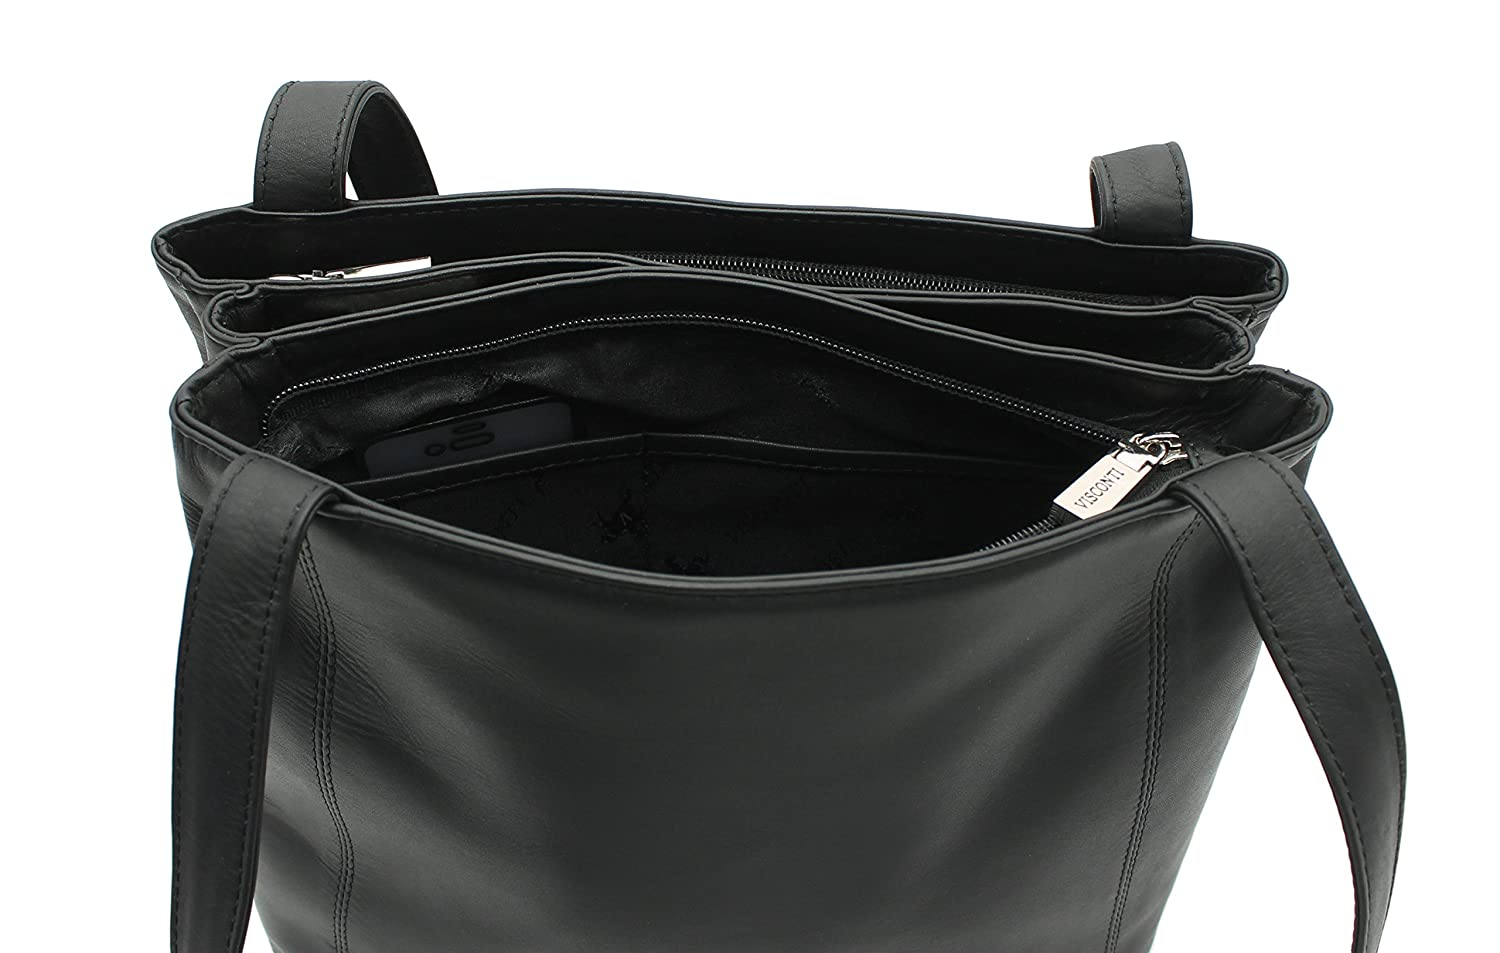 703f4a3ad0 Visconti Leather Two Strap Shoulder Bag 18181 Black  Amazon.co.uk  Luggage